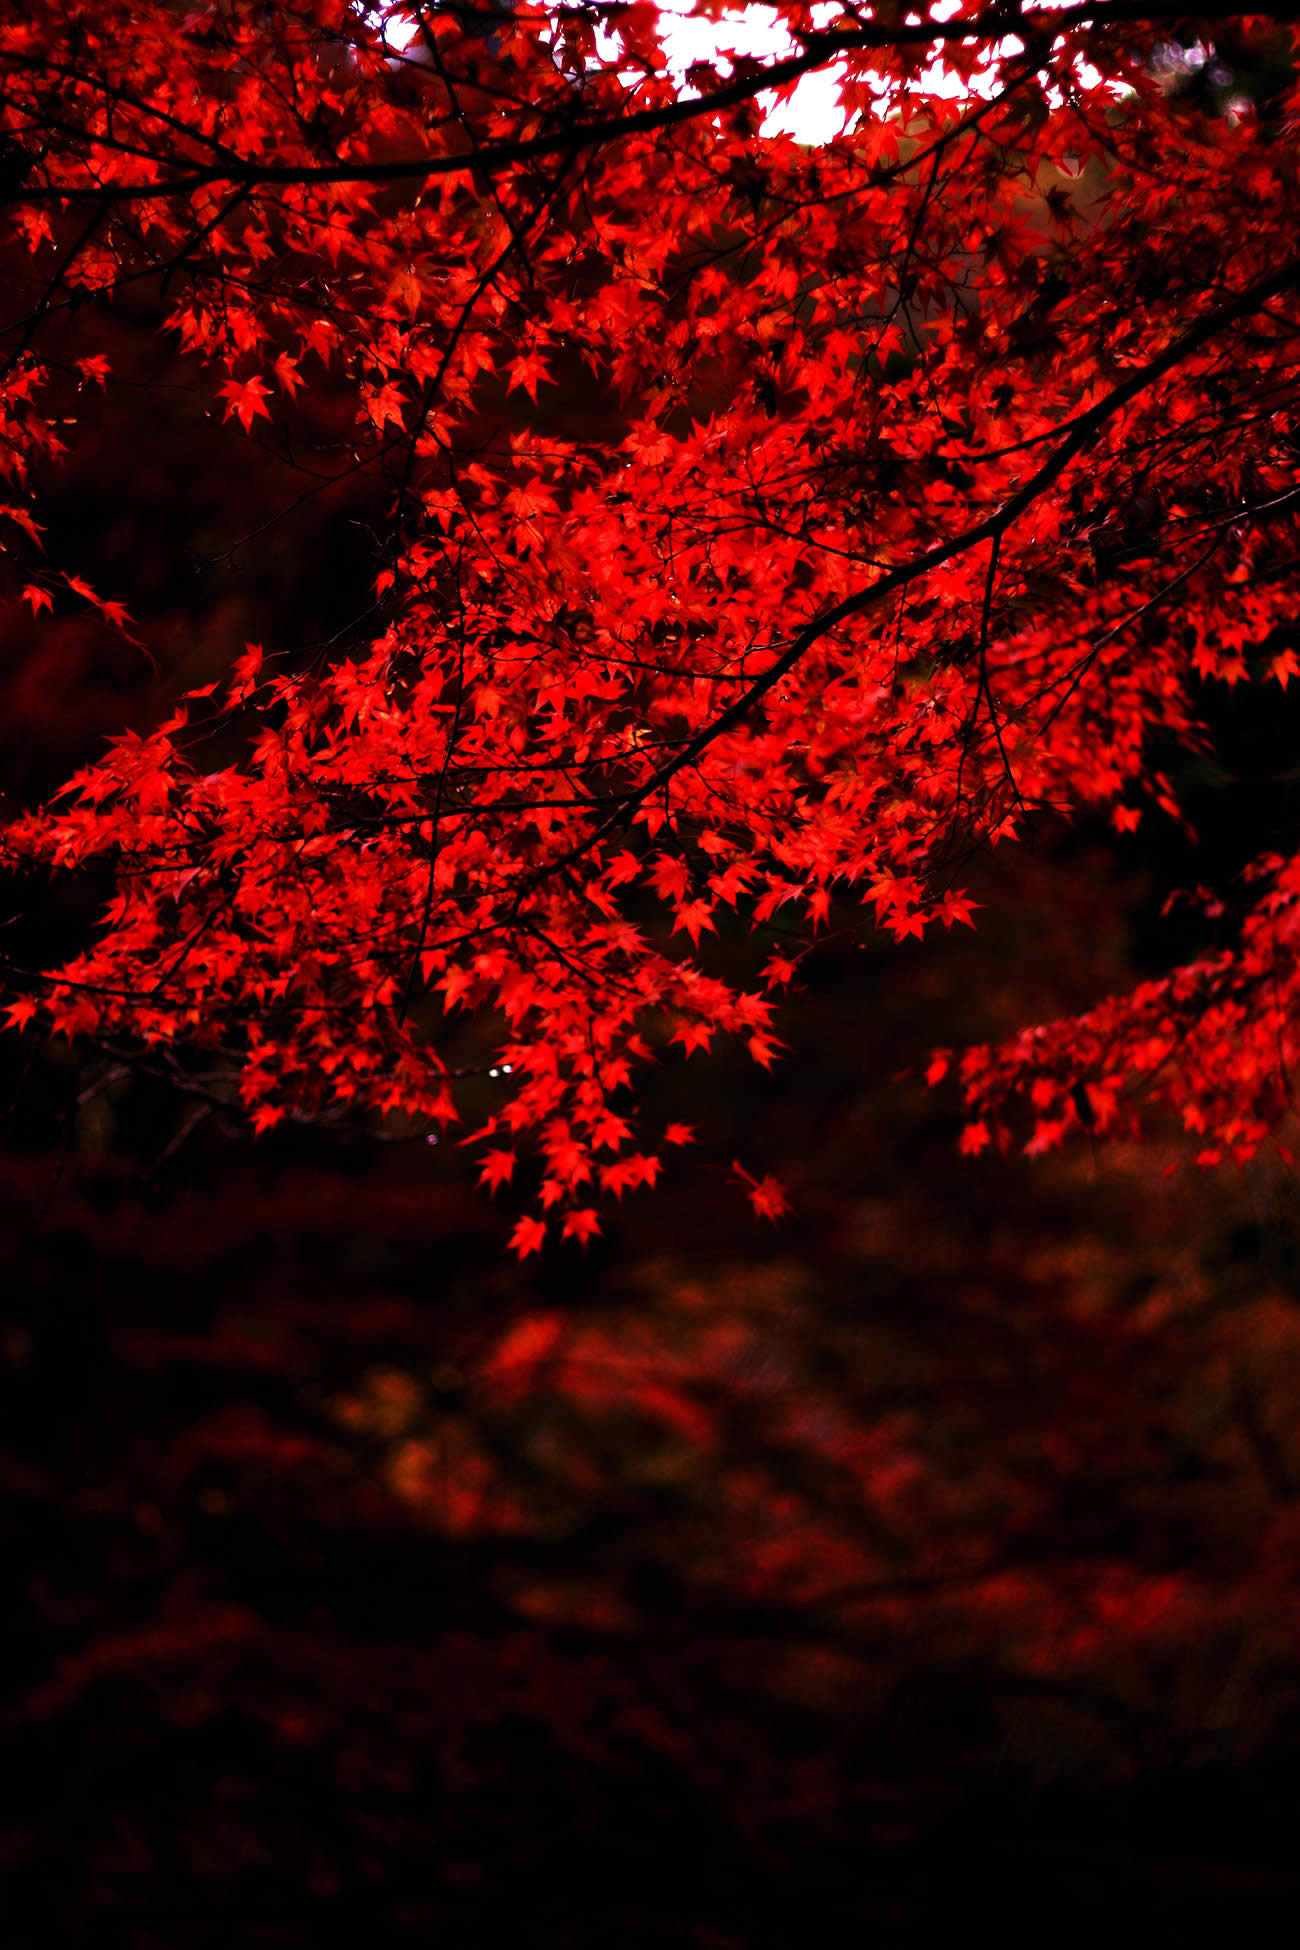 red leaves photo by arixxx